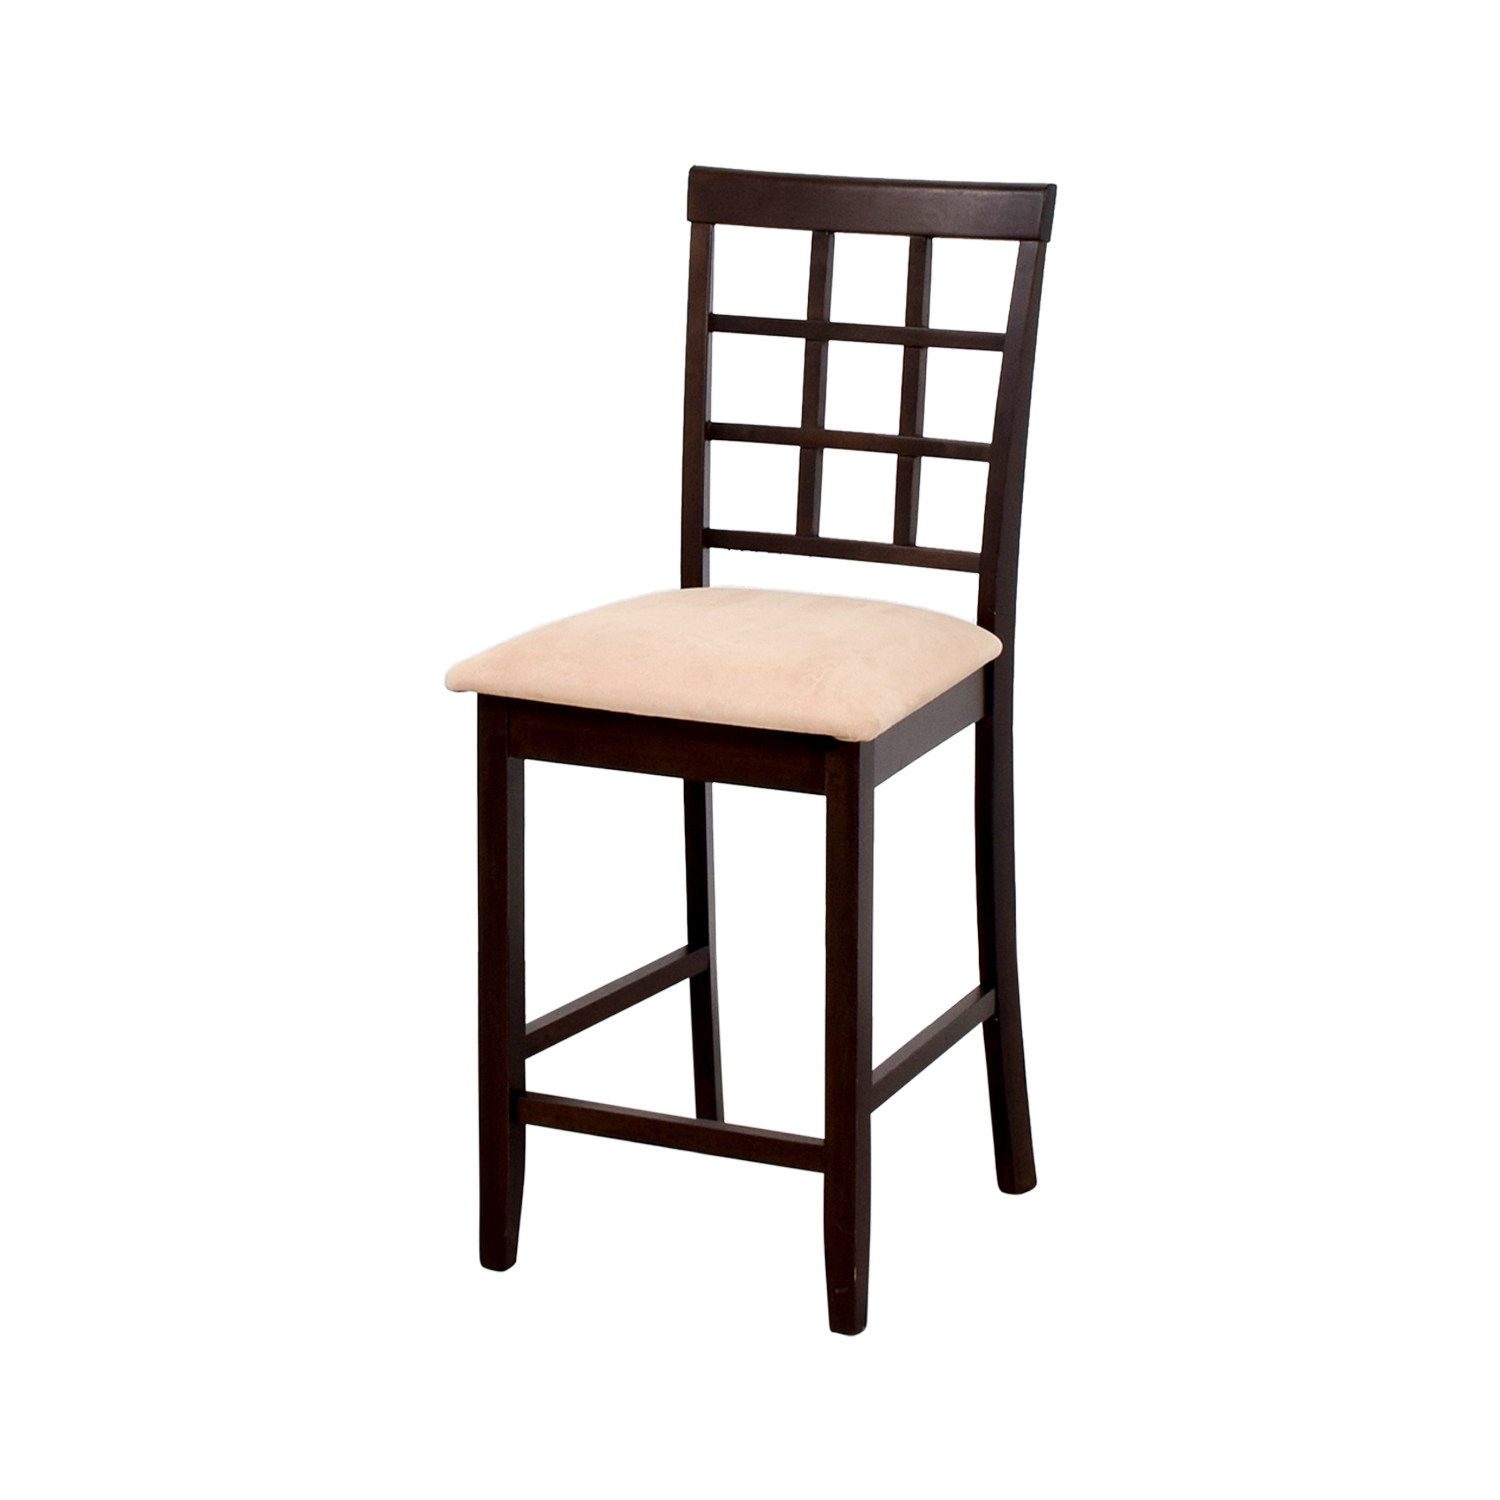 Counter Height Chair in Cappuccino and Tan Padded Seat Dining Chairs